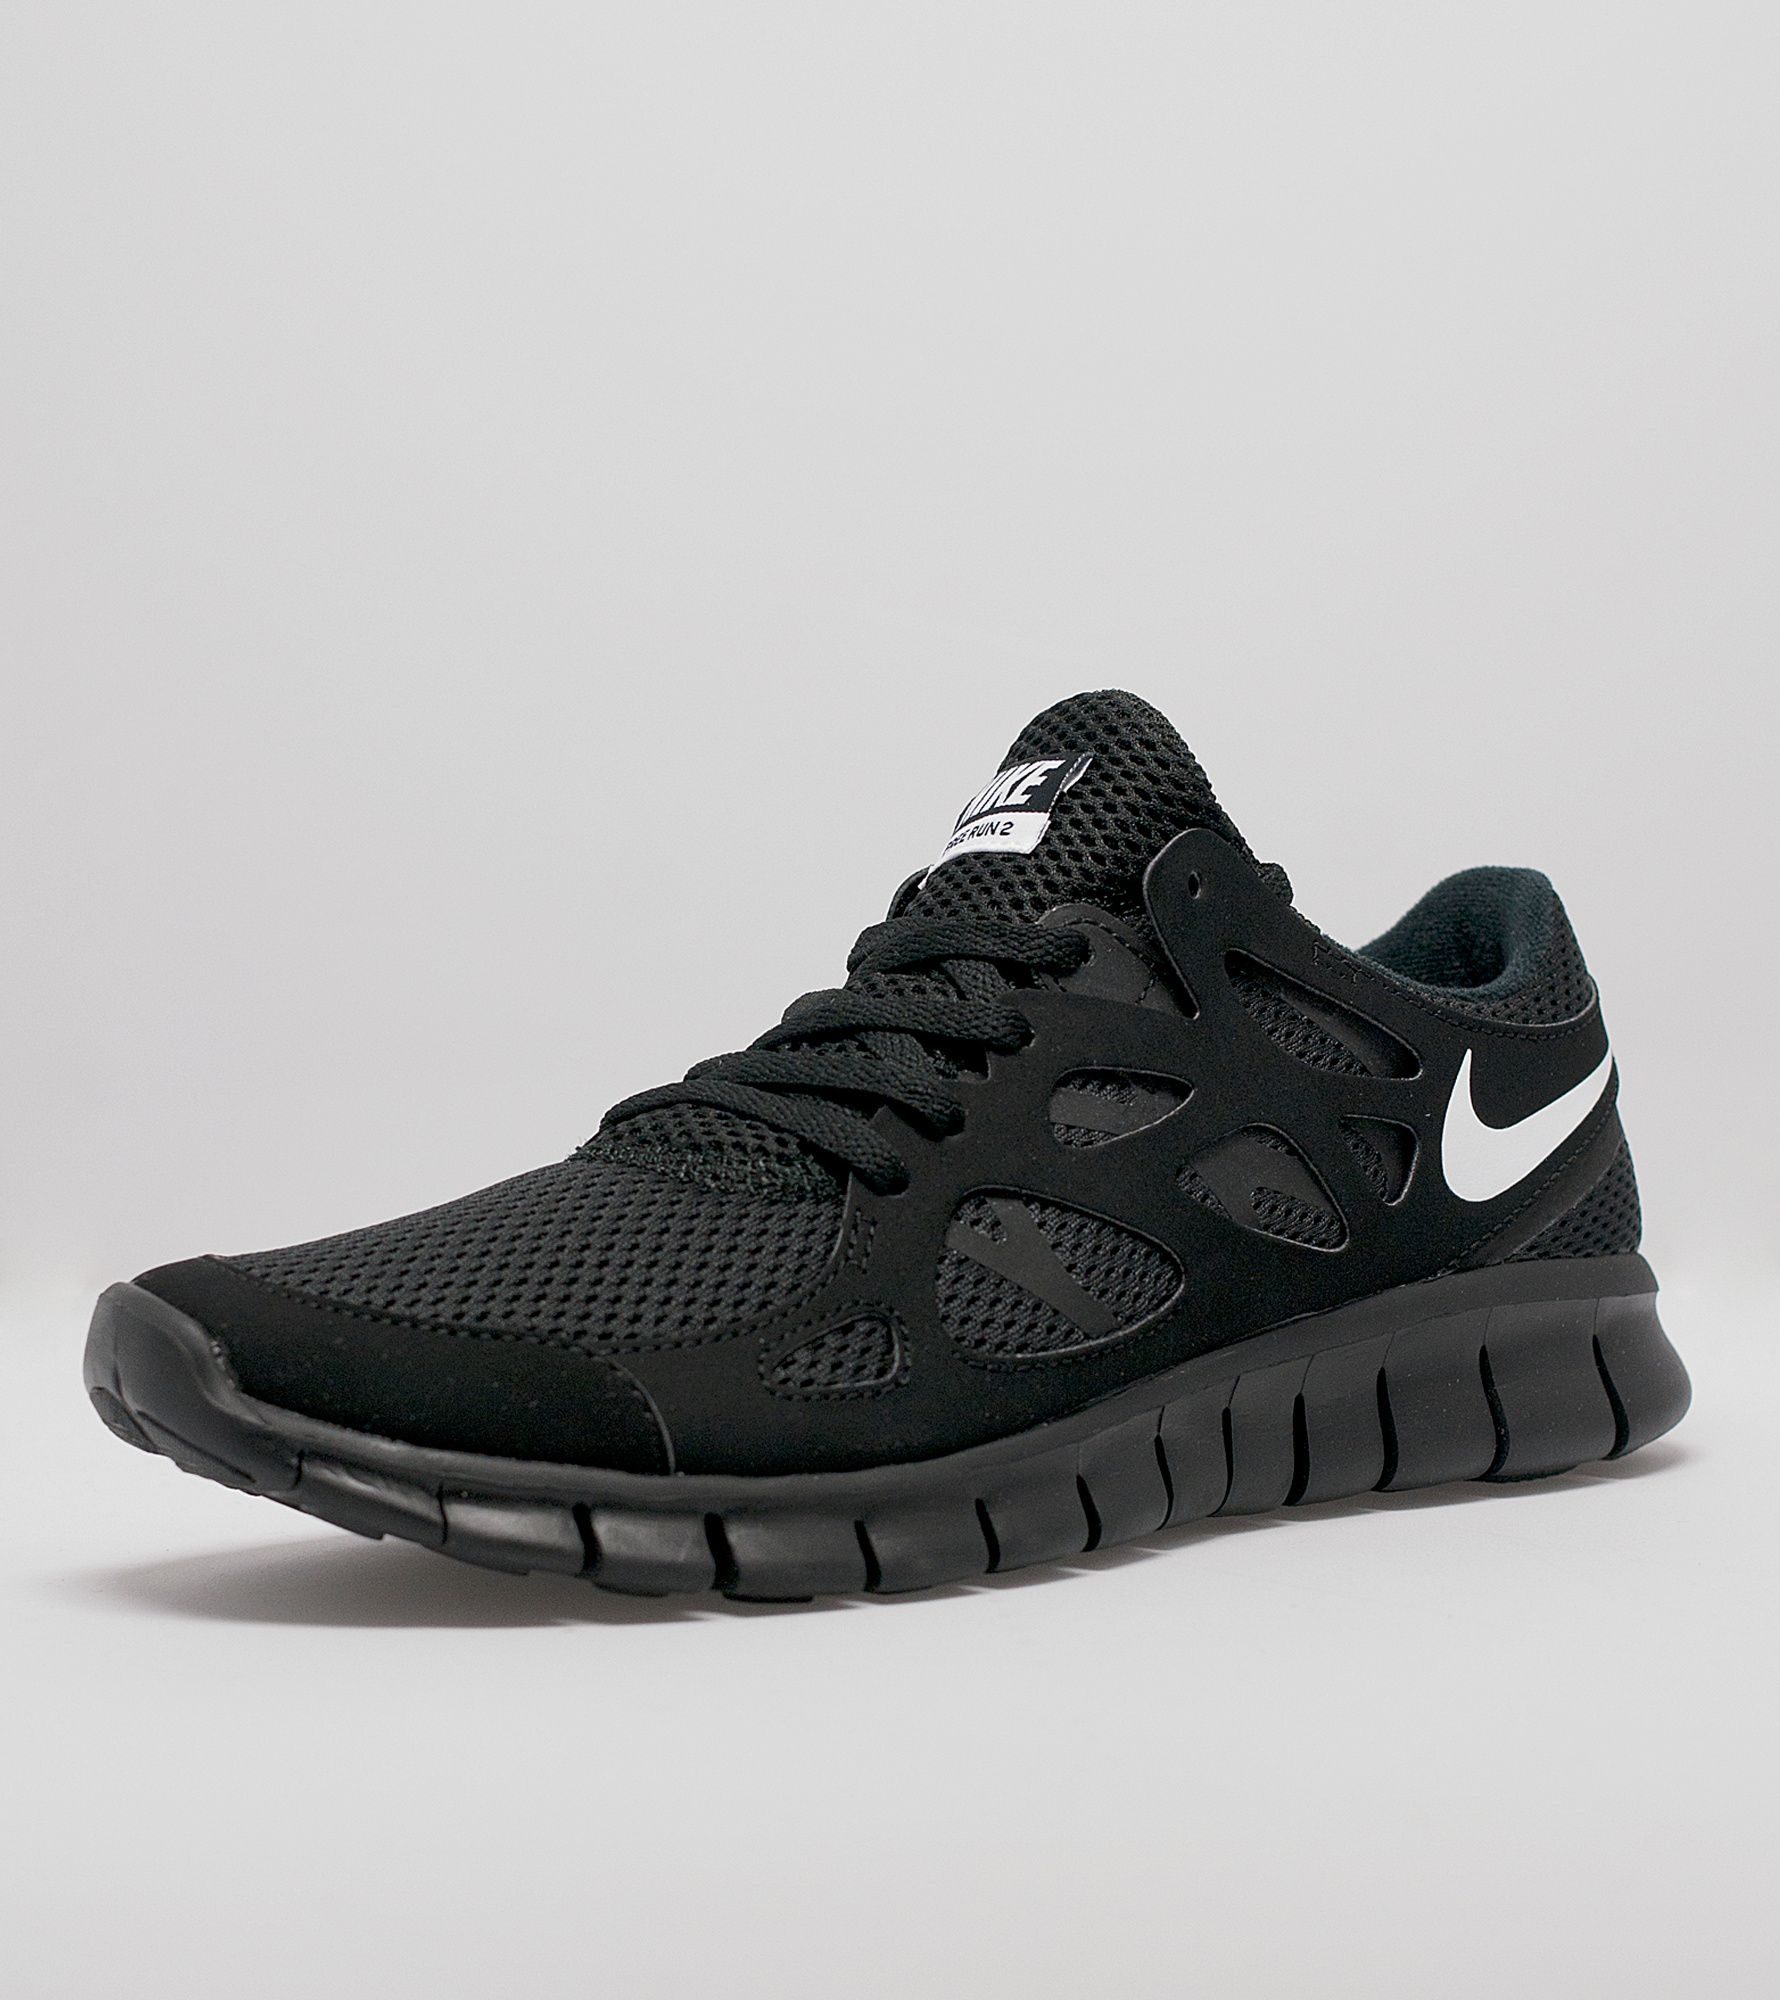 nike free run 2 size. Black Bedroom Furniture Sets. Home Design Ideas